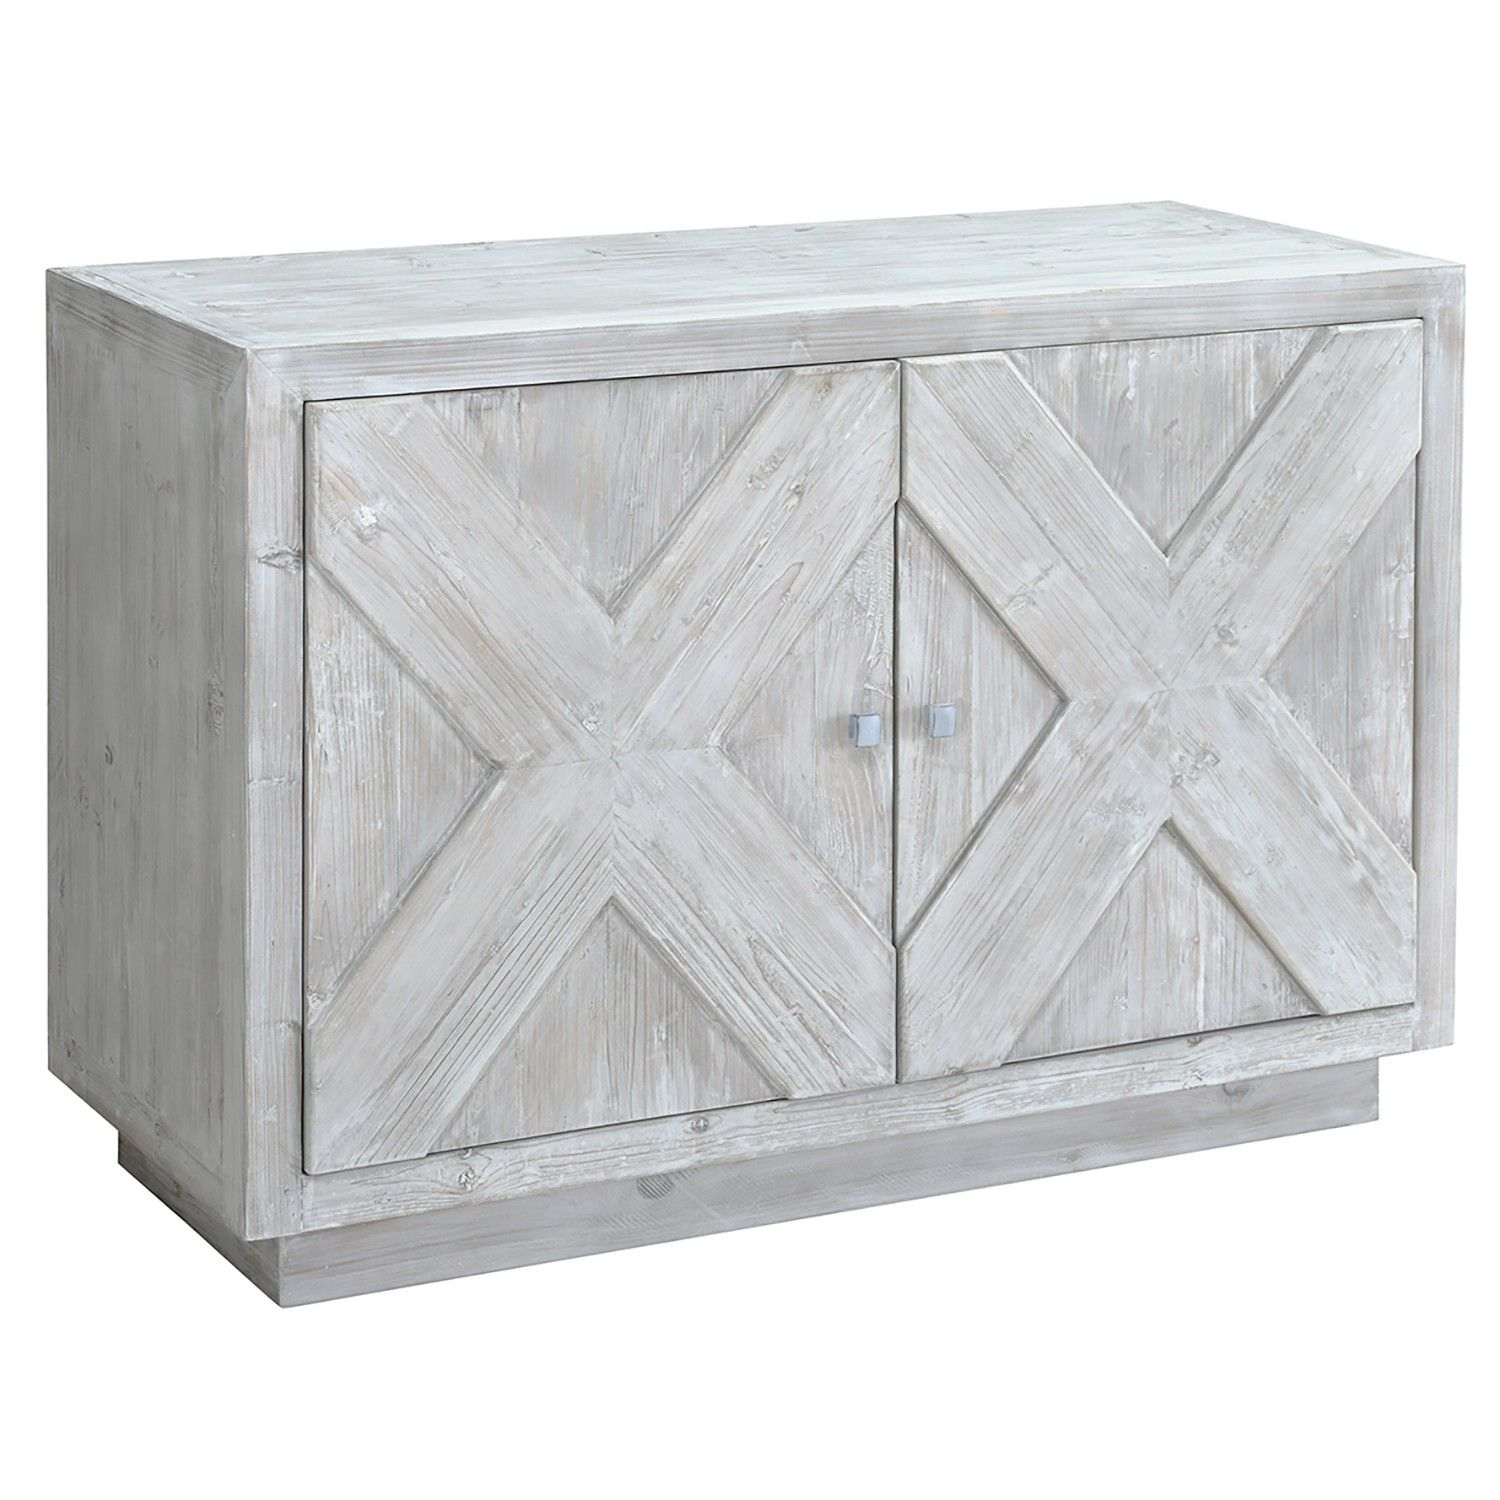 Dovetail Grayson 2 Door Sideboard In 2019 | Palisades Beach With Palisade Sideboards (Gallery 13 of 30)